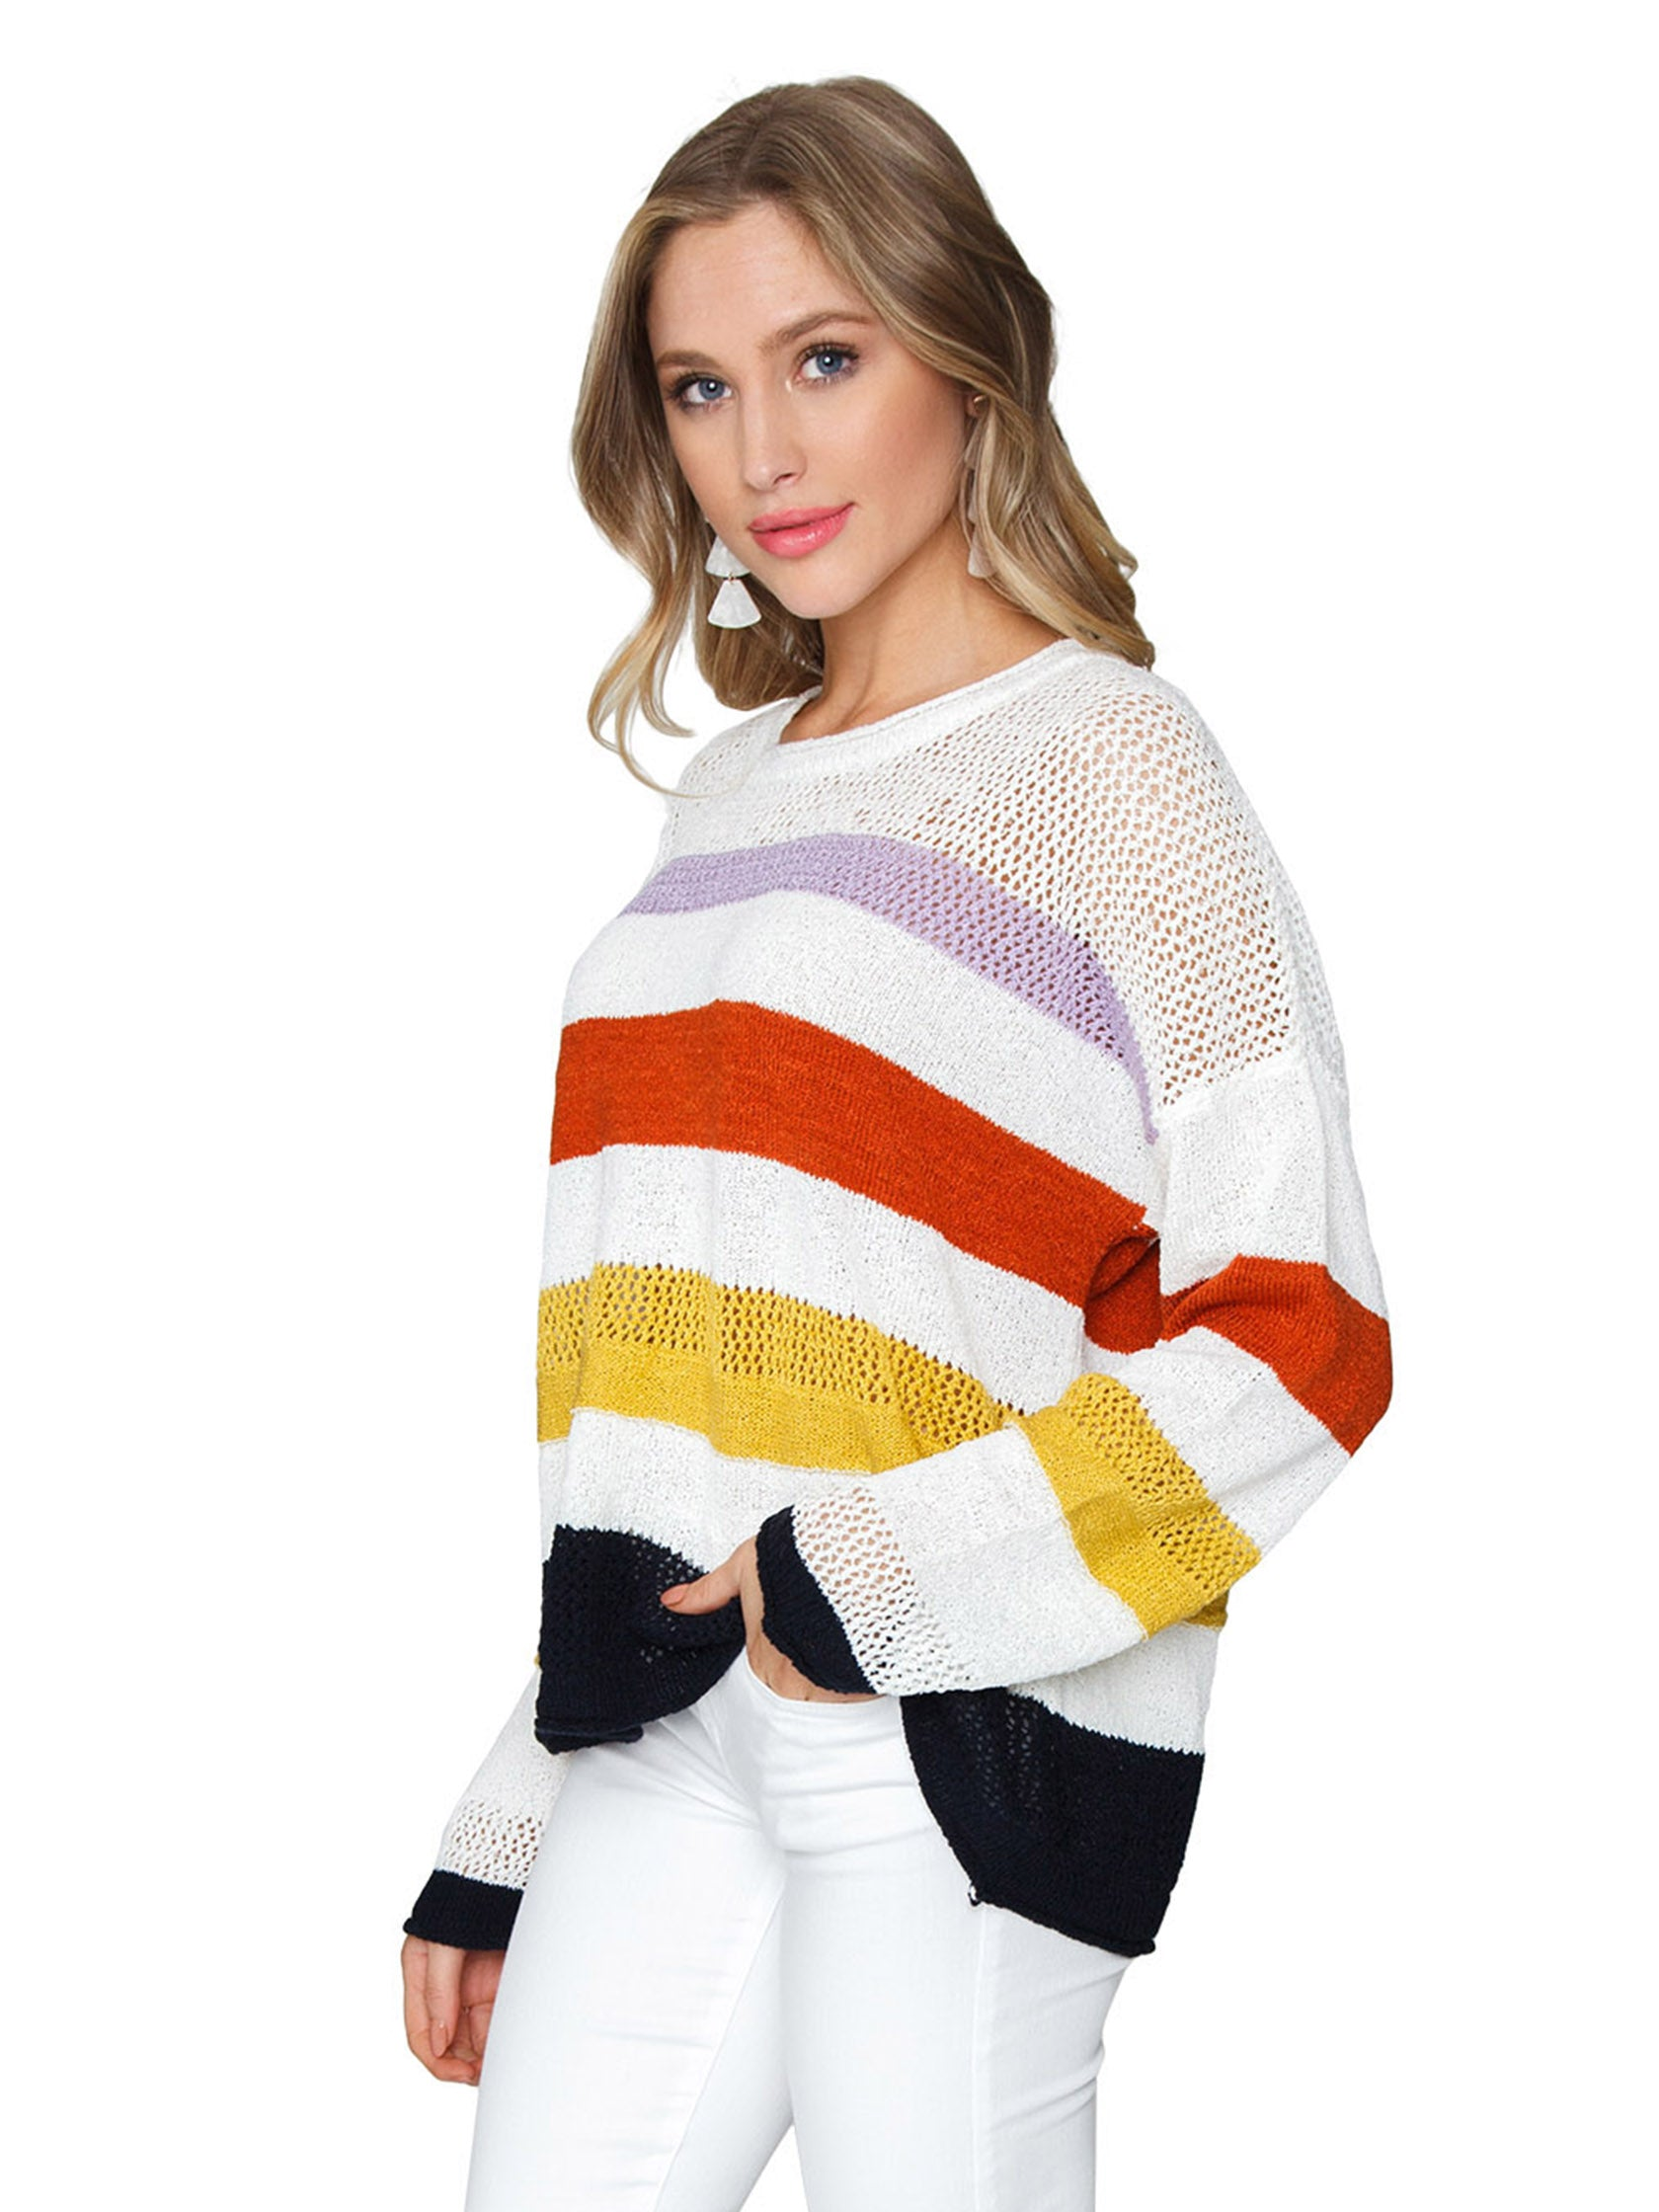 Women wearing a sweater rental from FashionPass called Lightweight Stripe Sweater